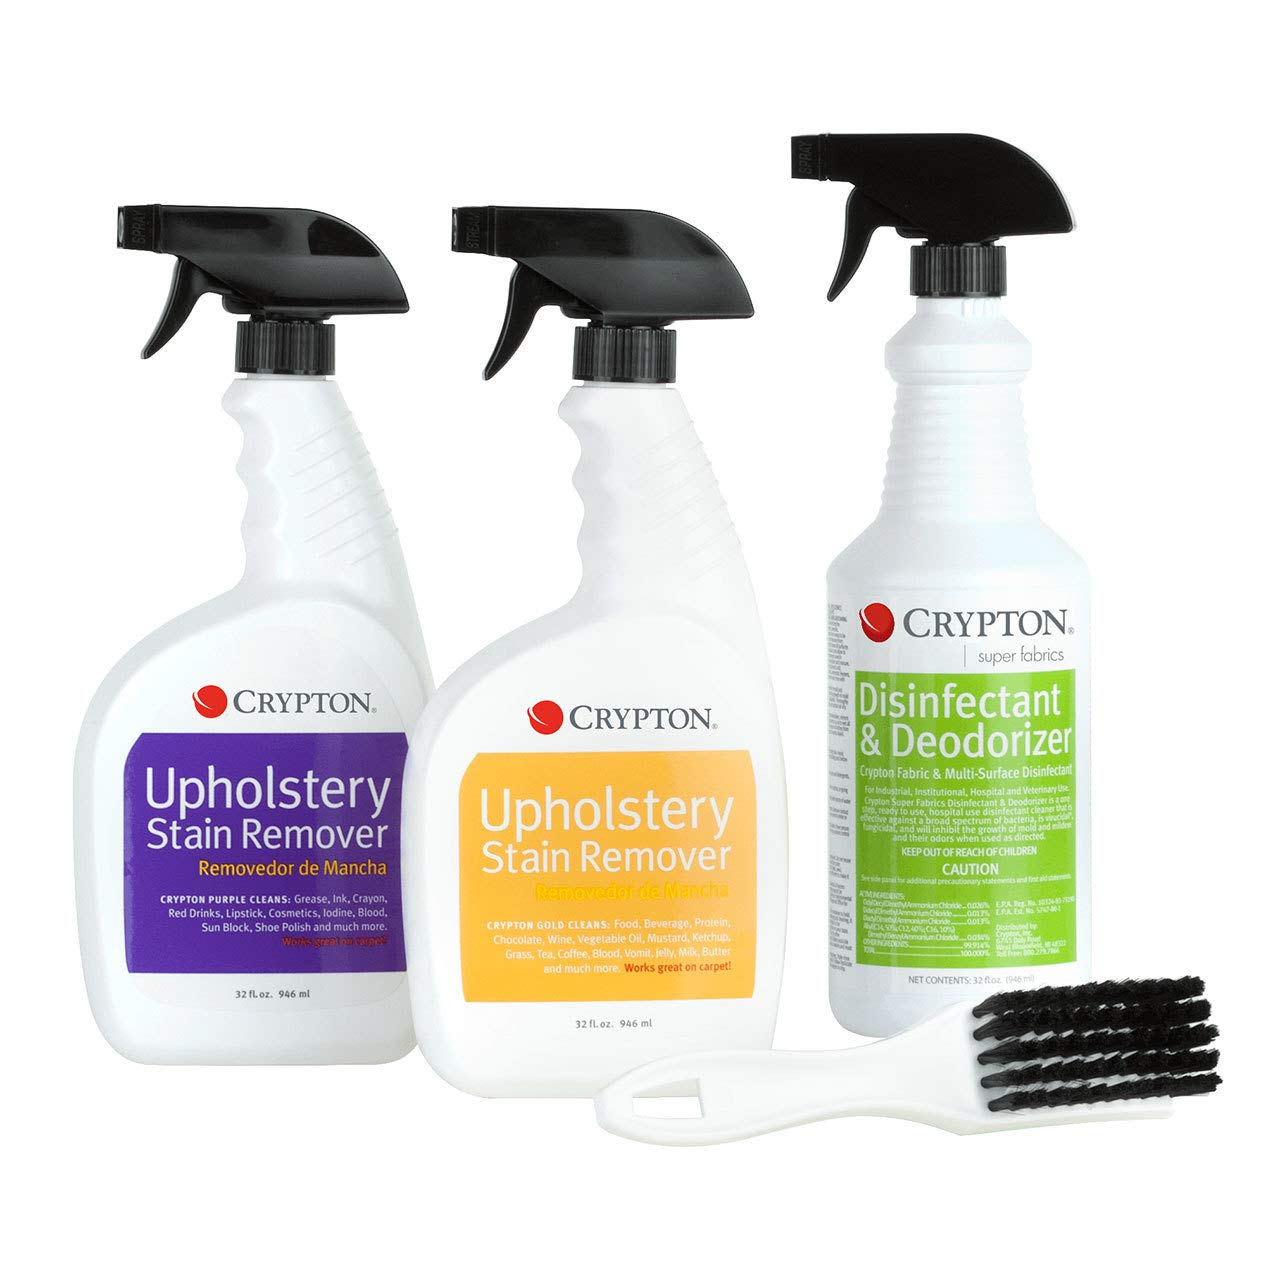 Crypton Upholstery Stain Remover Sampler Case (32 fl. oz.) by Crypton (Image #1)